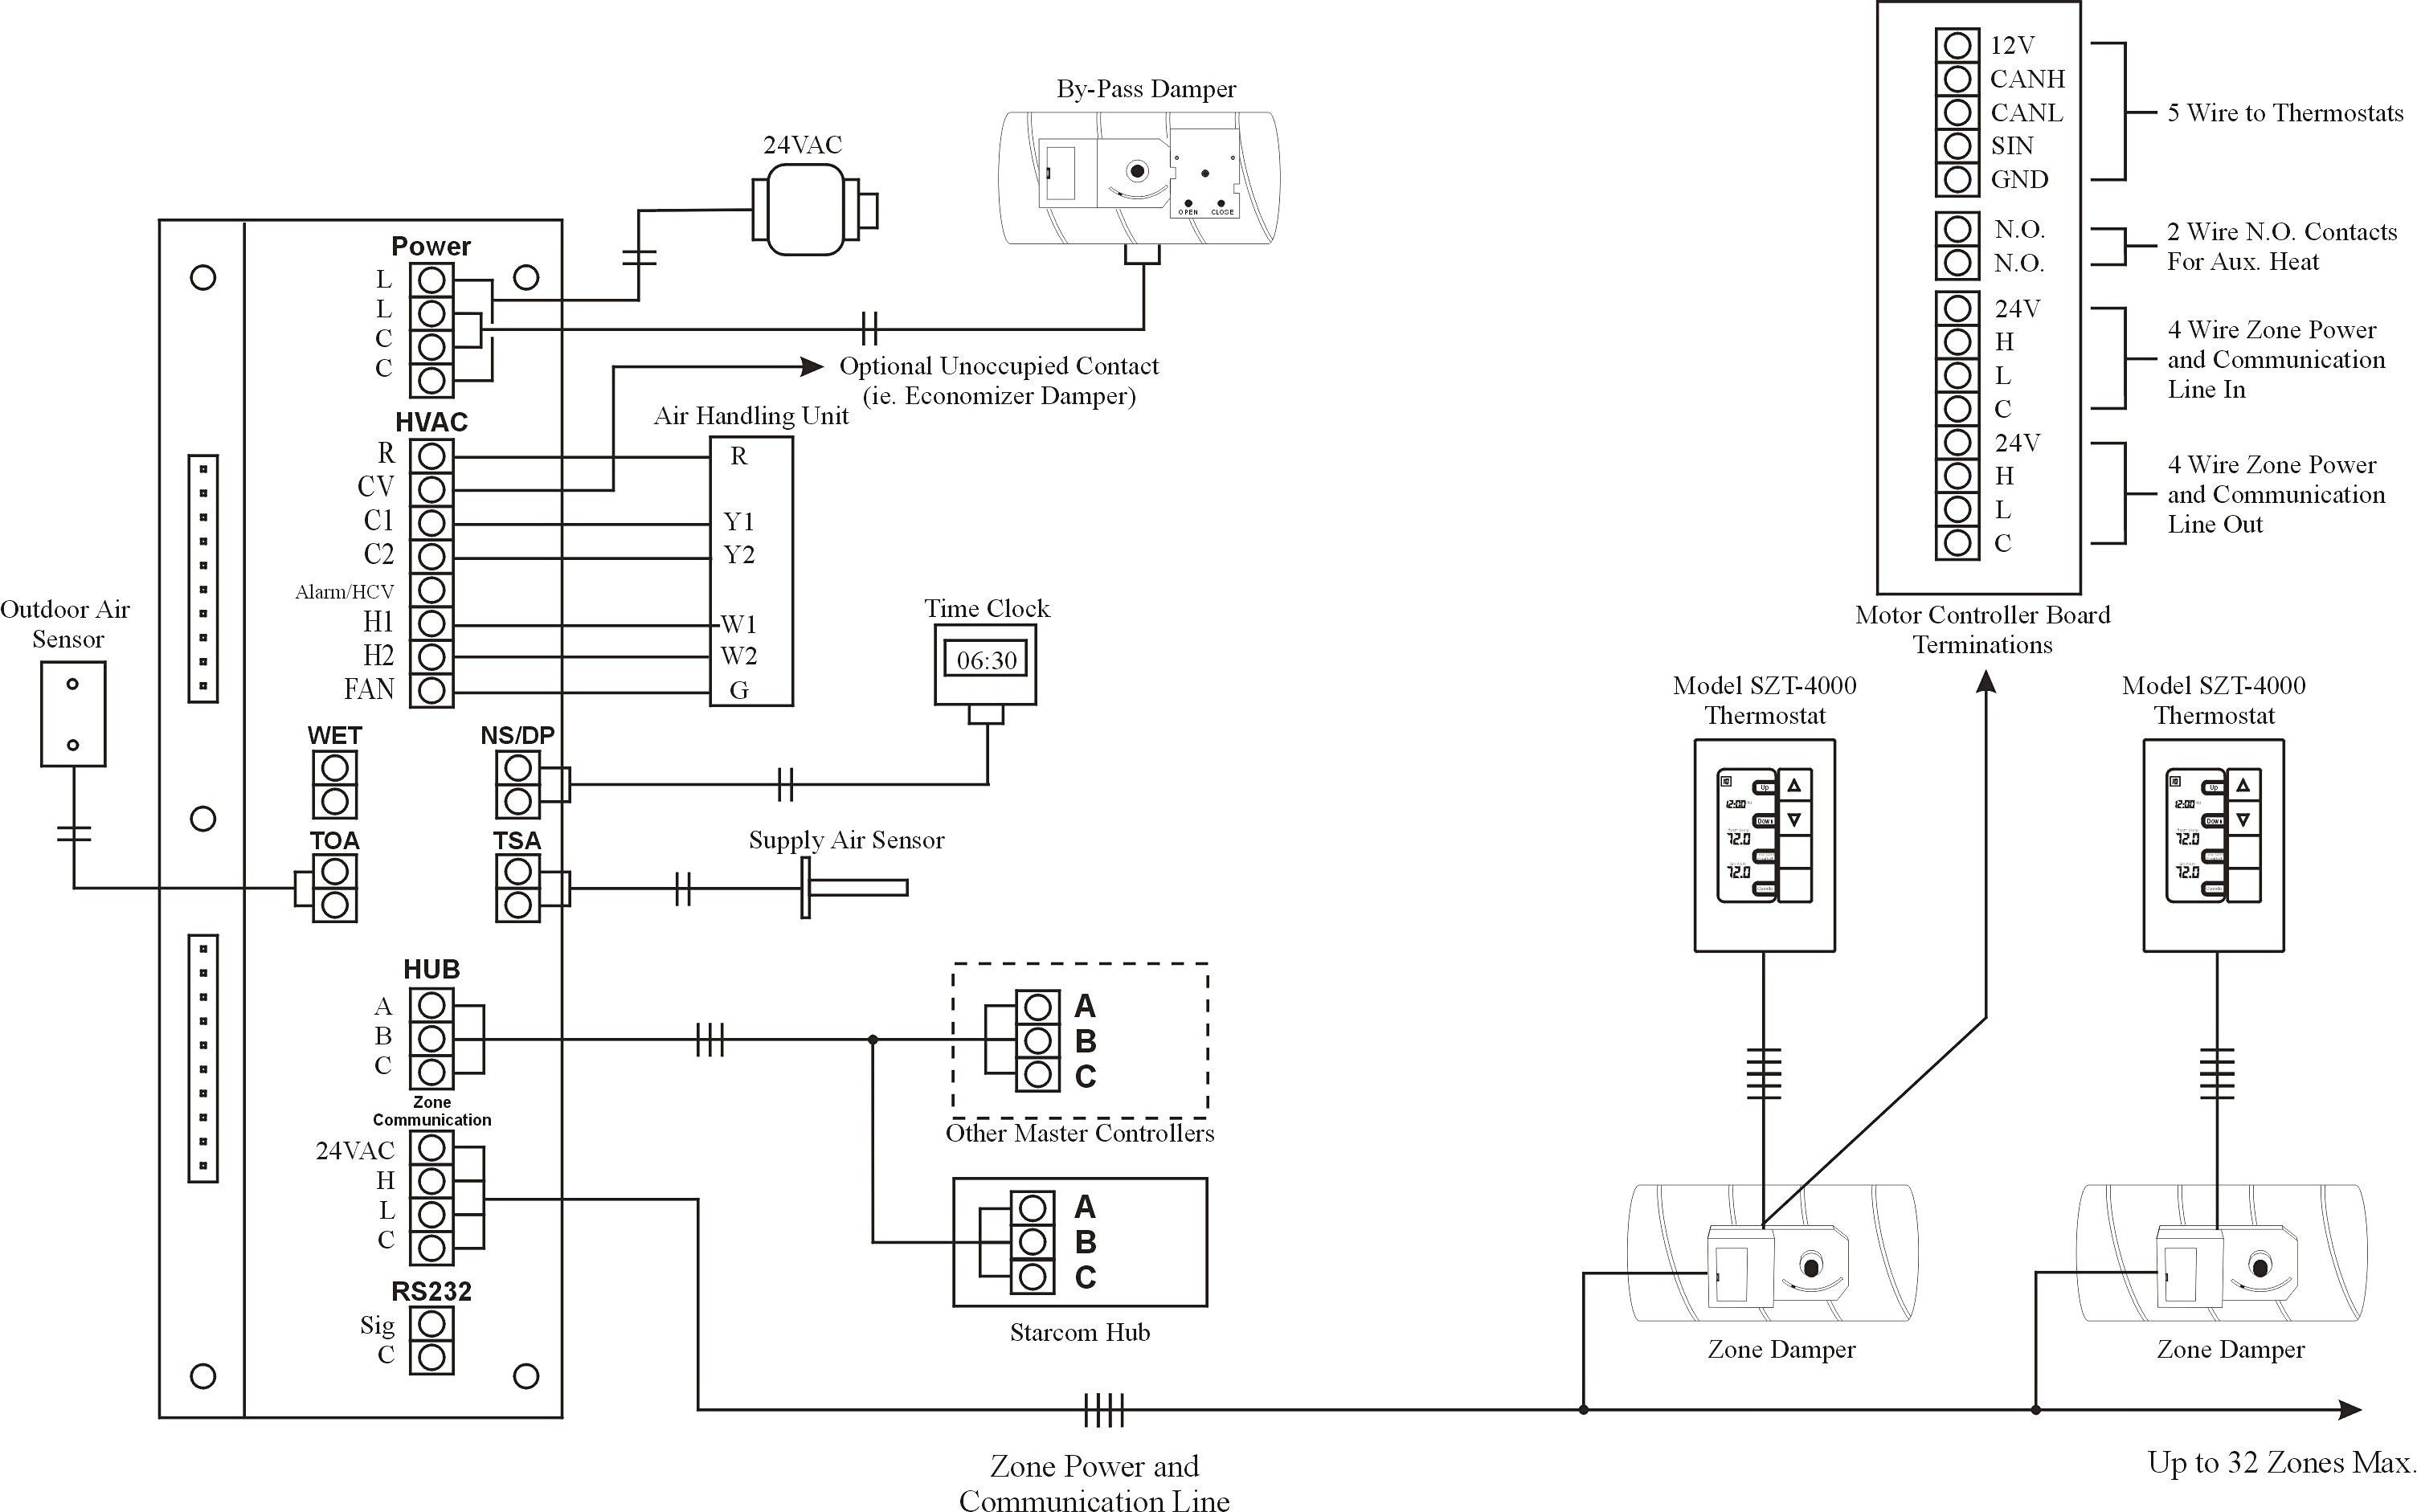 Viper 5305v Wiring Diagram Unique In 2020 Fire Alarm System Home Security Systems Alarm System